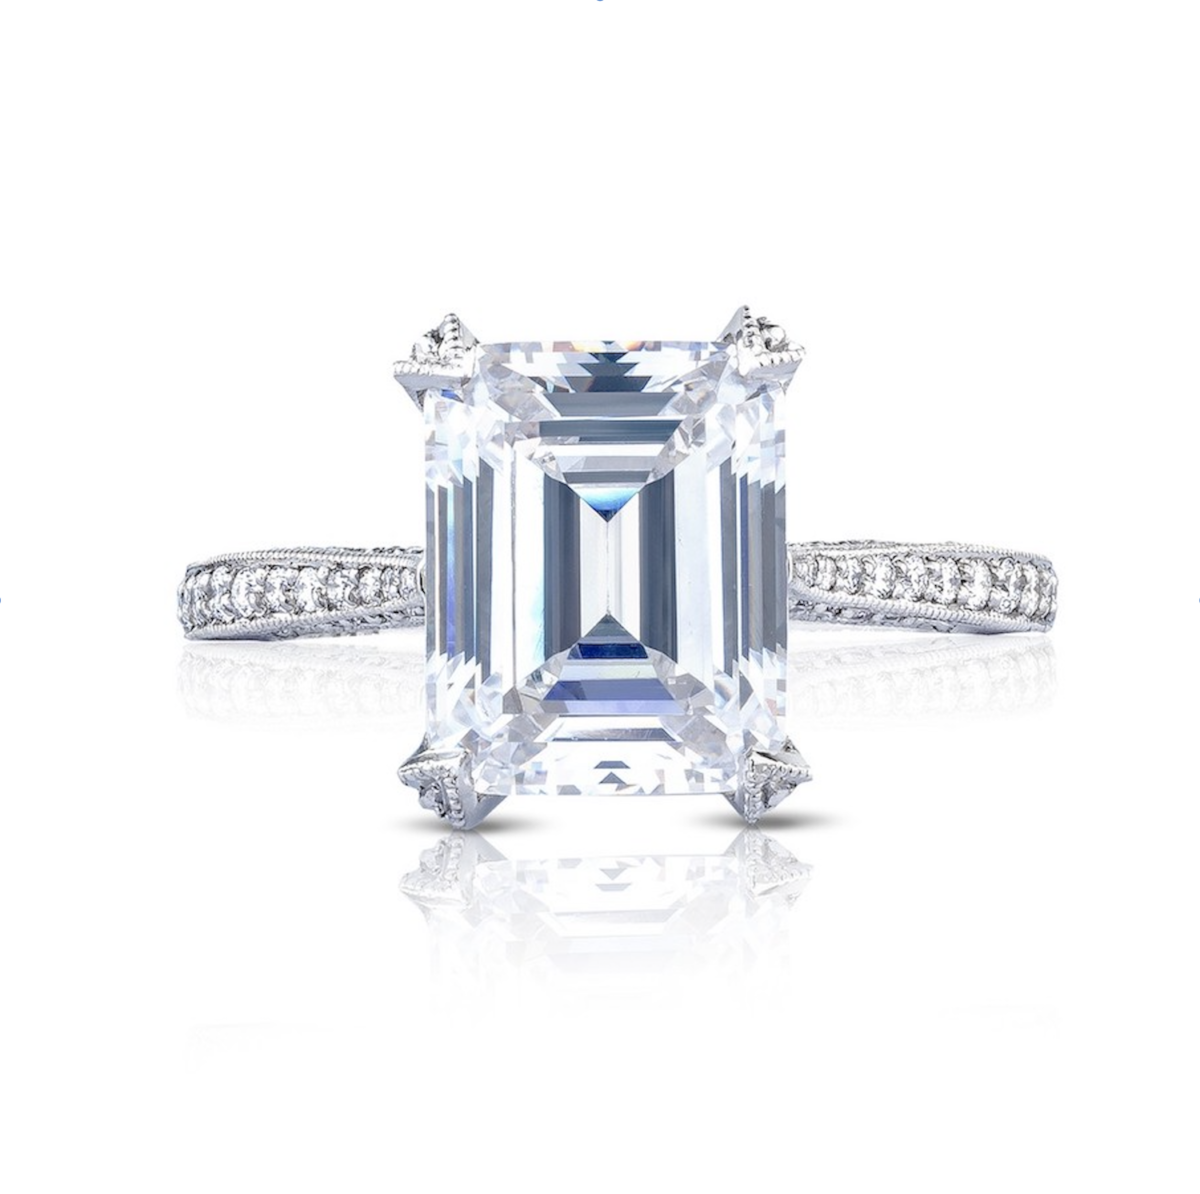 Sale Tacori Classic Crescent Emerald Cut Diamond Engagement Ring 50 Off Marshall Pierce Chicago